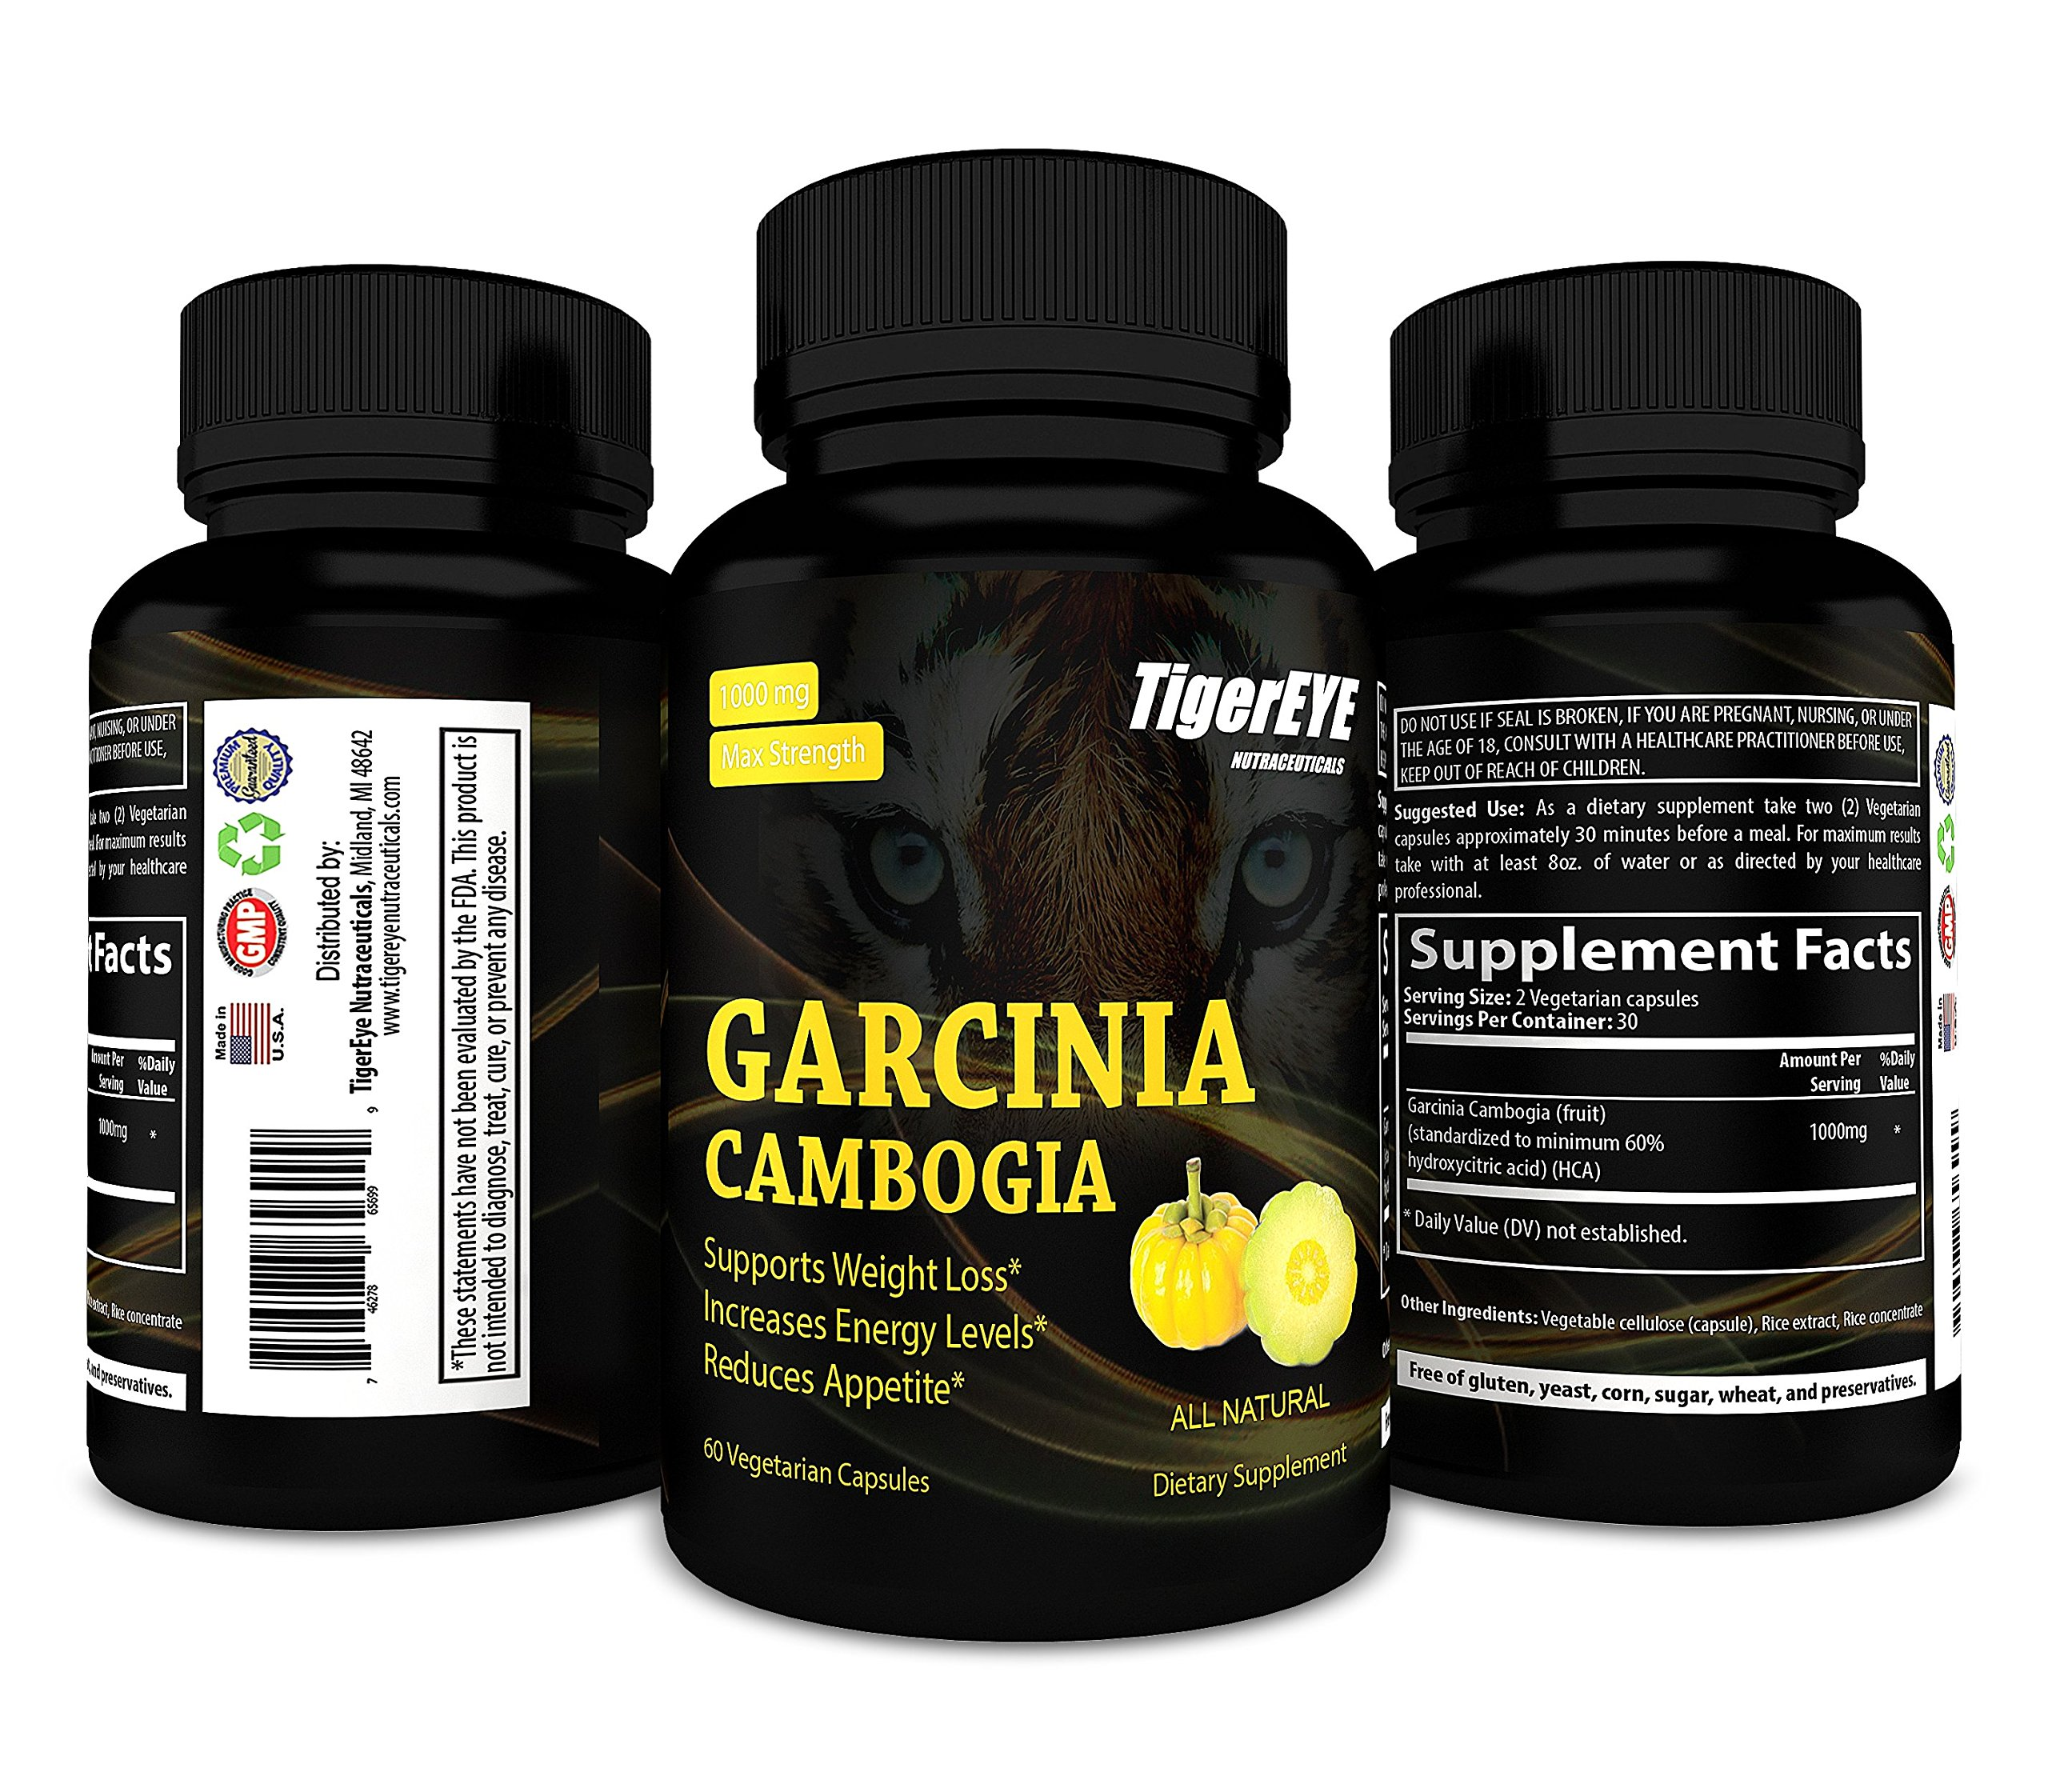 Pure Garcinia Cambogia Extract 100% New Extra Strength, All Natural Appetite Suppressant, Boosts Energy, Carb Blocker, Weight Loss Supplement, 60 Vegetarian Capsules by Tigereye Nutraceuticals (Image #2)